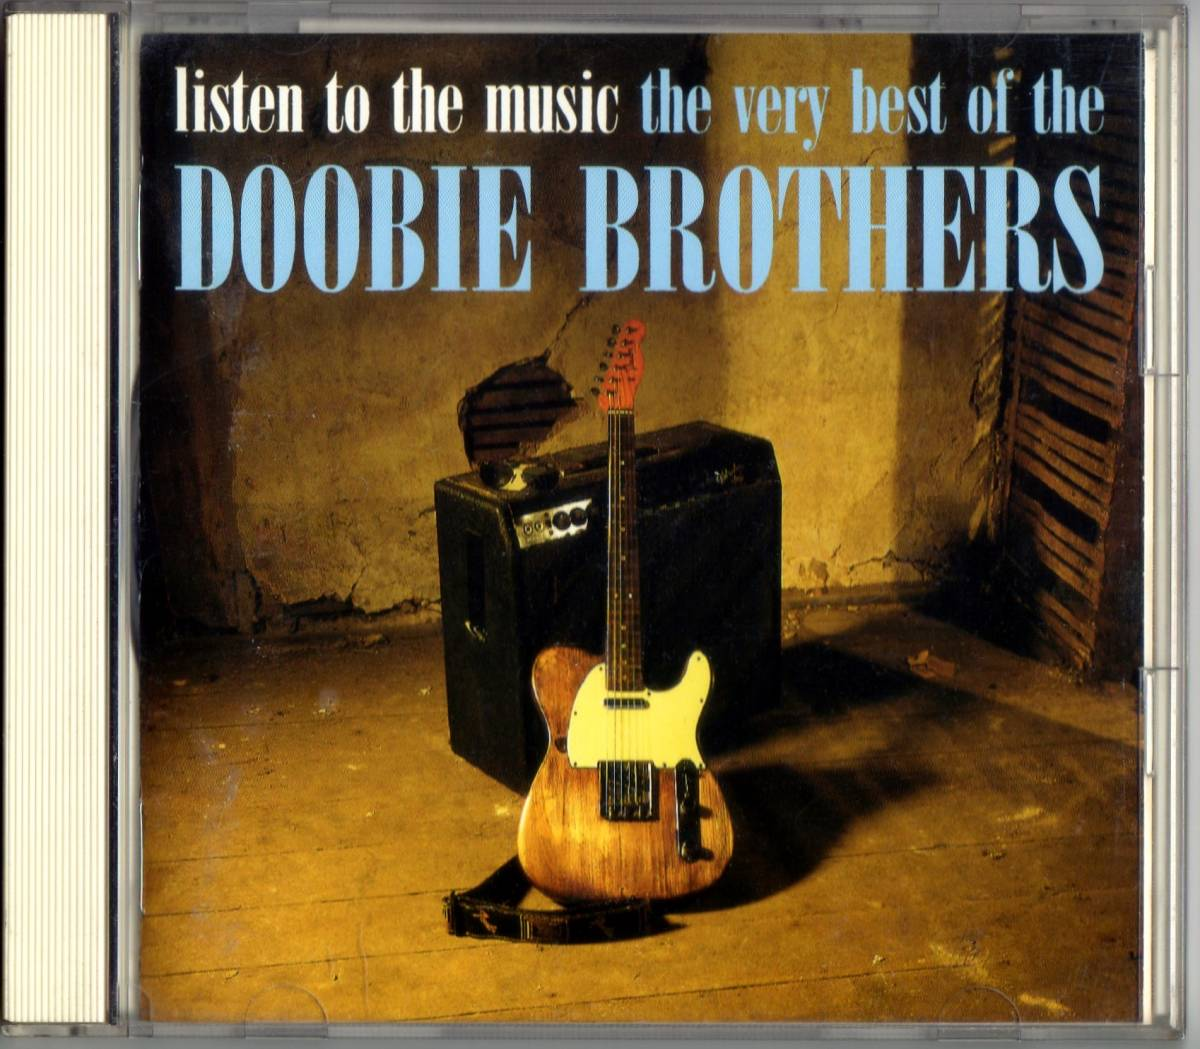 CD★国内盤★ドゥービーブラザーズ★The Very Best of The DOOBIE BROTHERS / LISTEN TO THE MUSIC他 _画像1